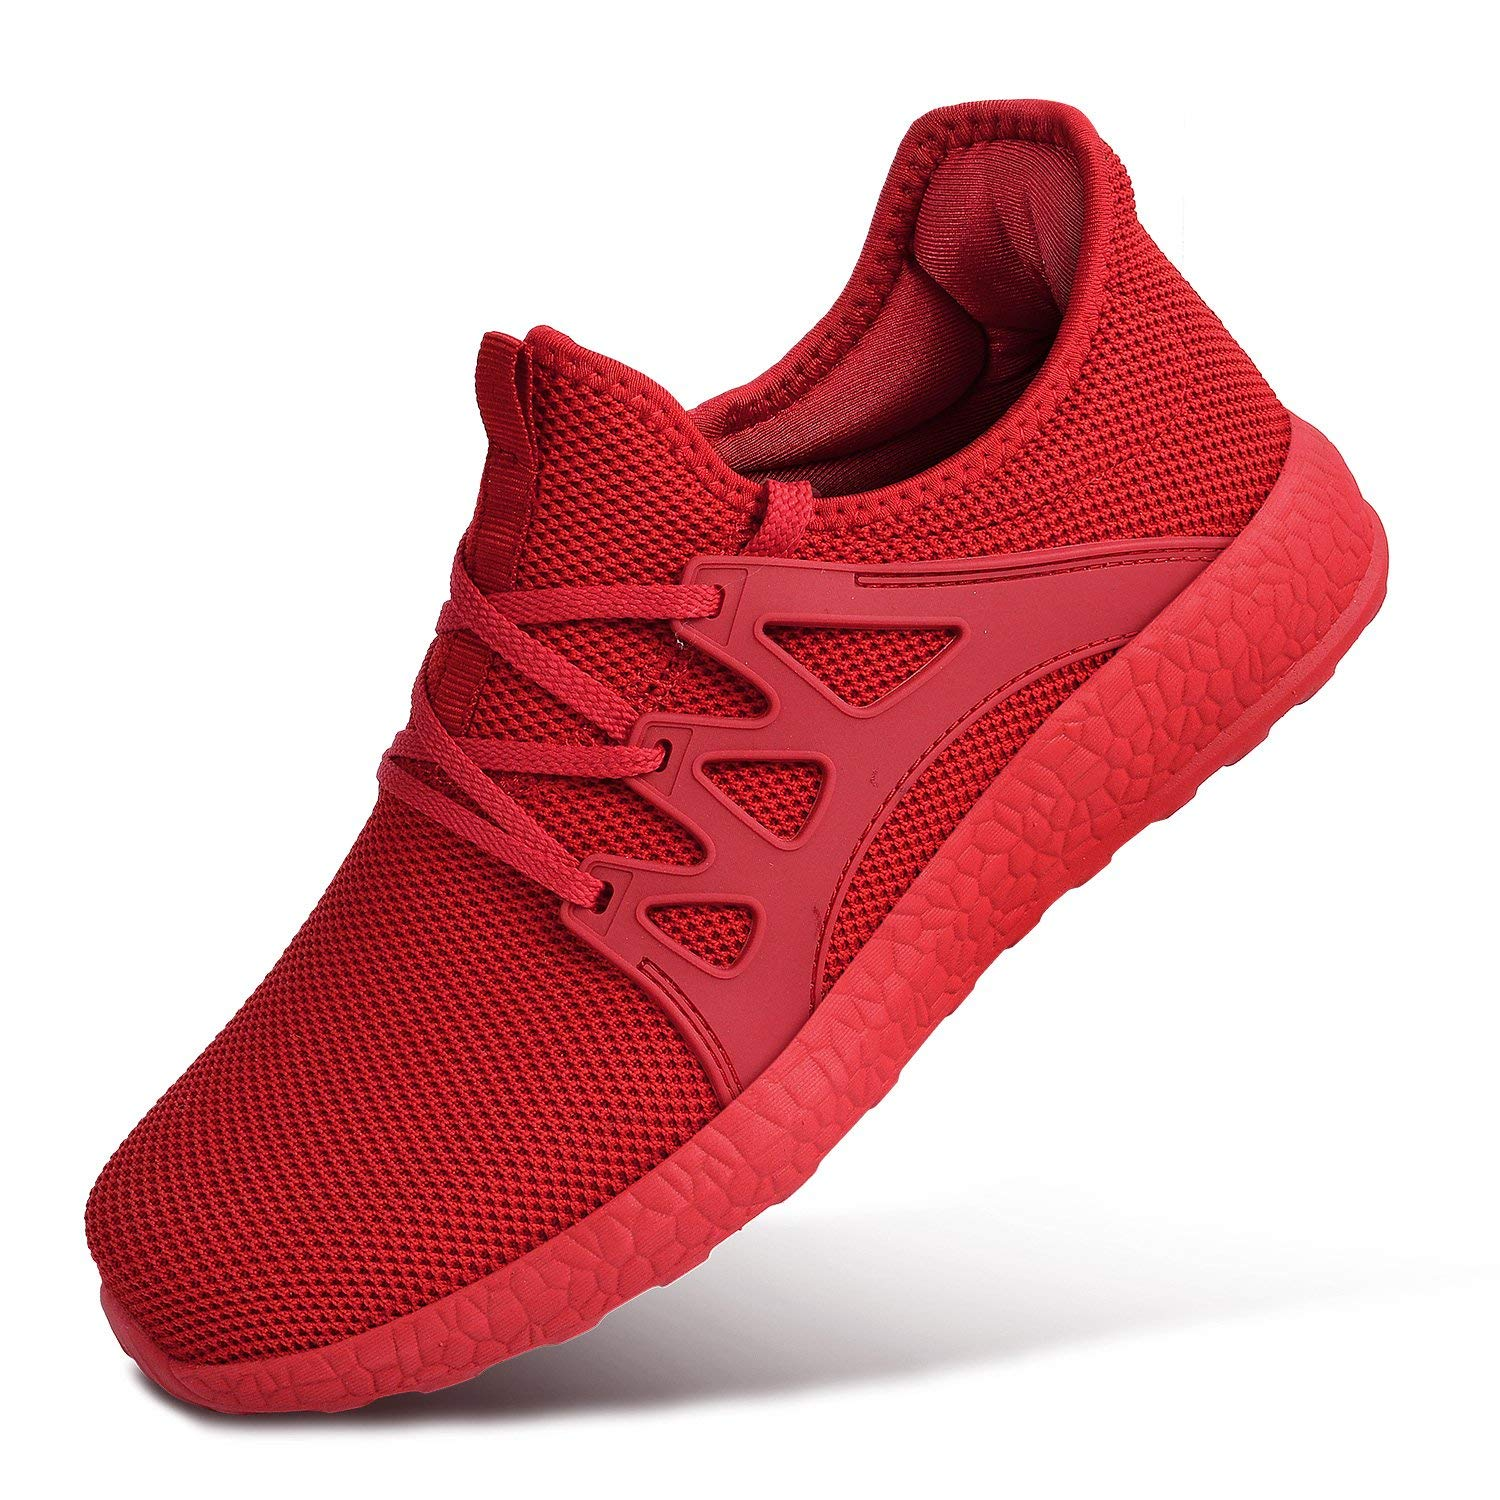 SouthBrothers Sneakers Women Walking Gym Shoes Tennis Athletic Running Shoes Red 12